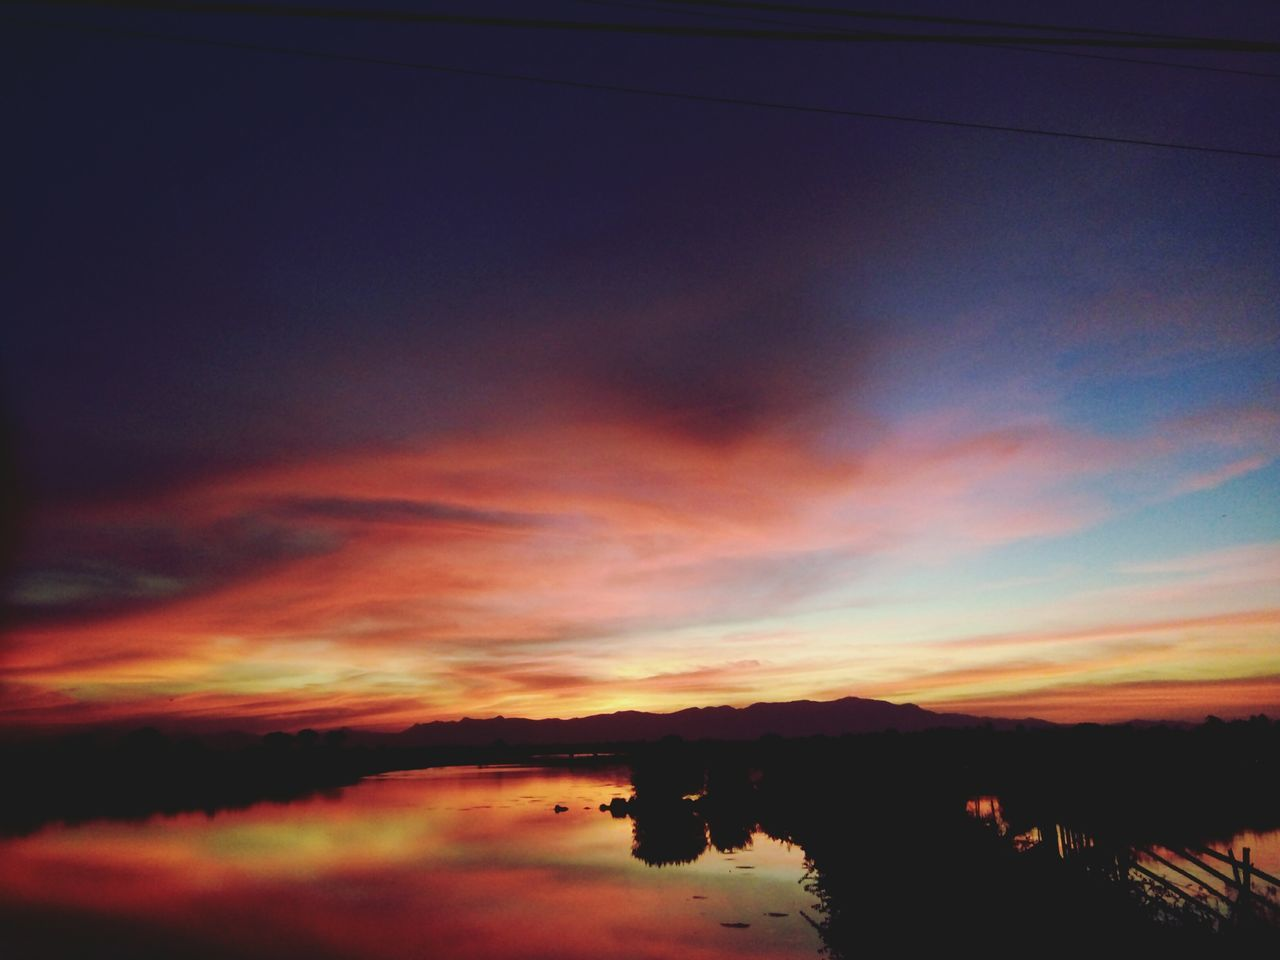 sunset, scenics, silhouette, tranquil scene, tranquility, nature, sky, beauty in nature, no people, cloud - sky, water, outdoors, landscape, day